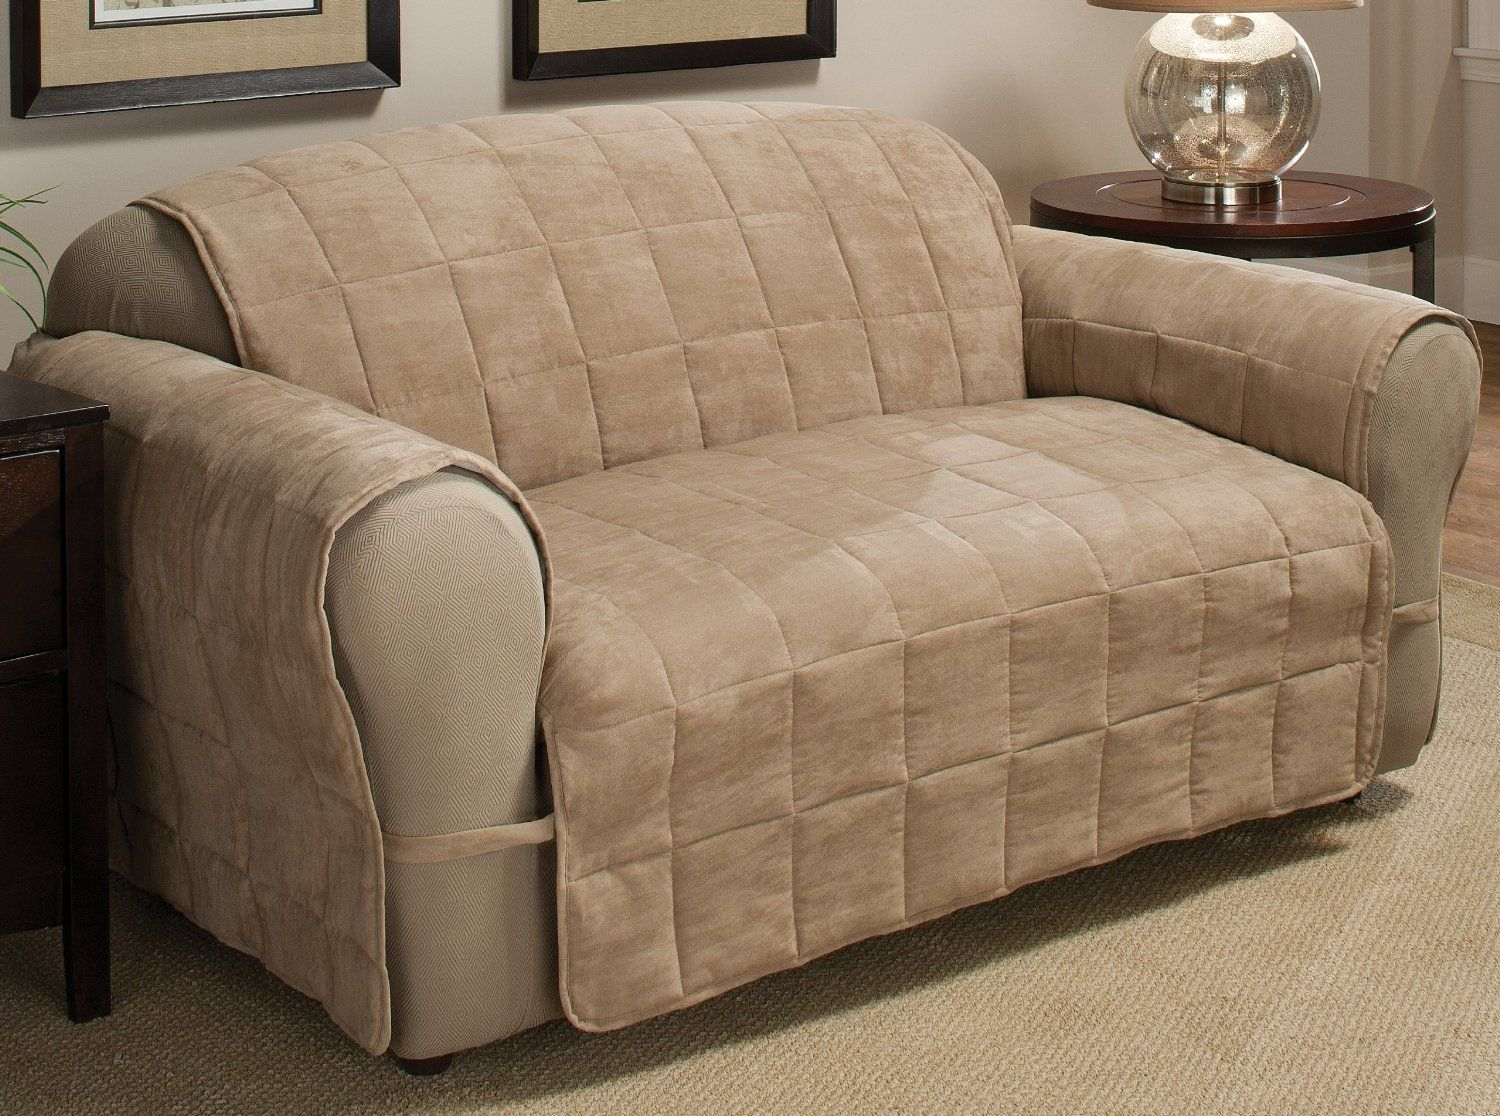 10 Best Sofa Cover For Leather Couch Elegant And Stunning Sofa